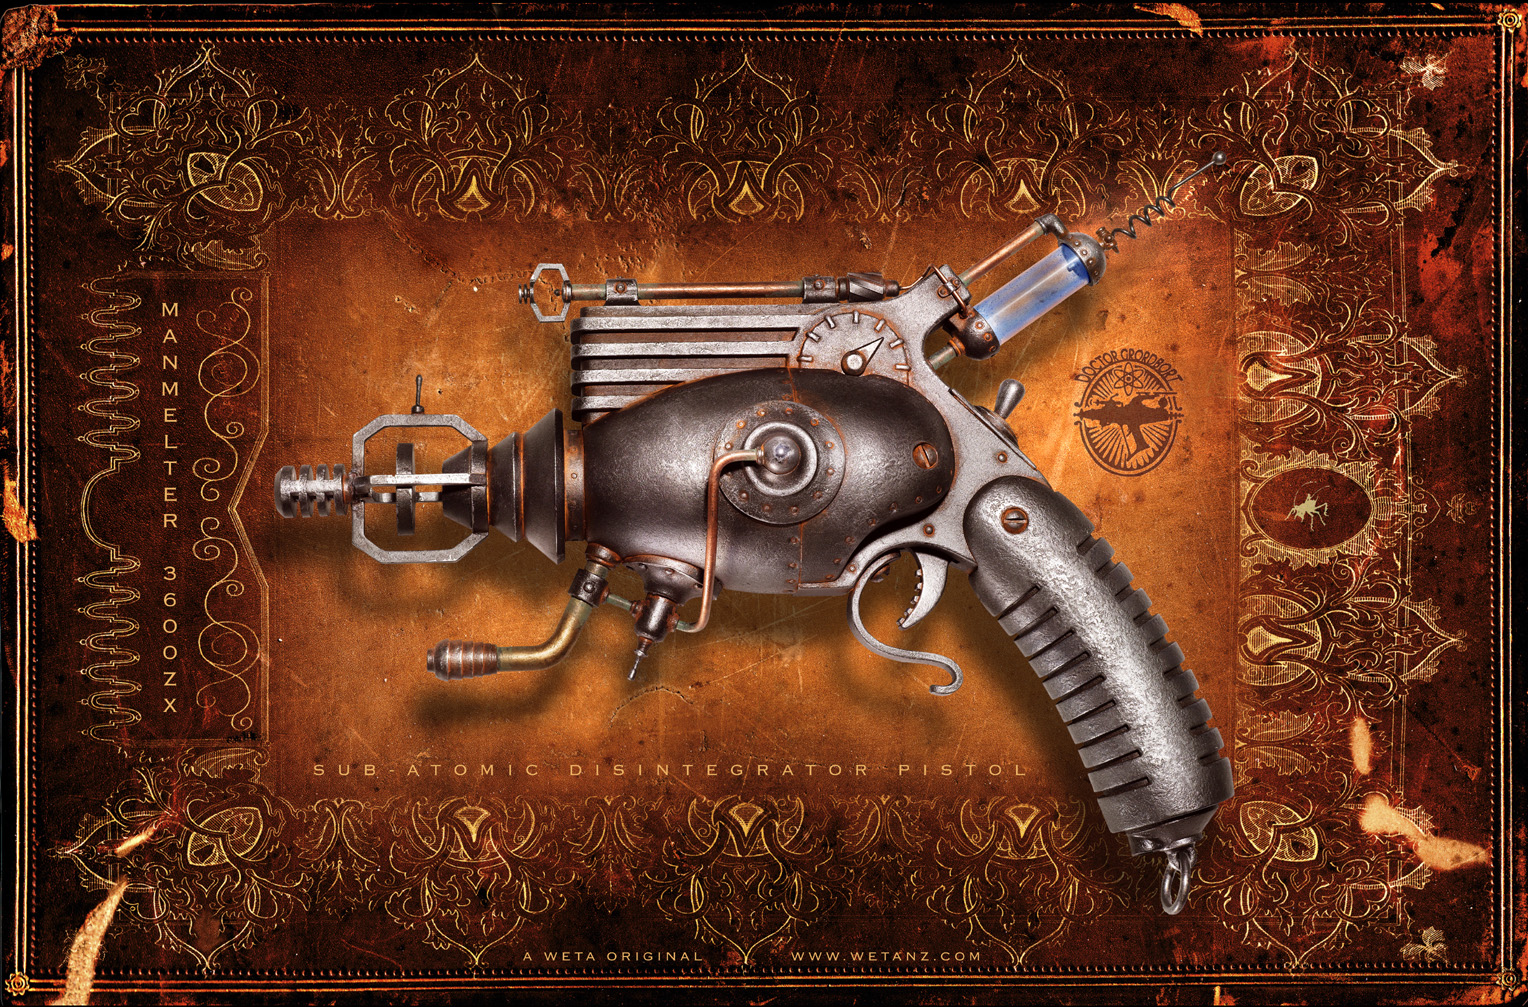 Steampunk Computer Wallpapers Desktop Backgrounds 1528x1007 ID 1528x1007